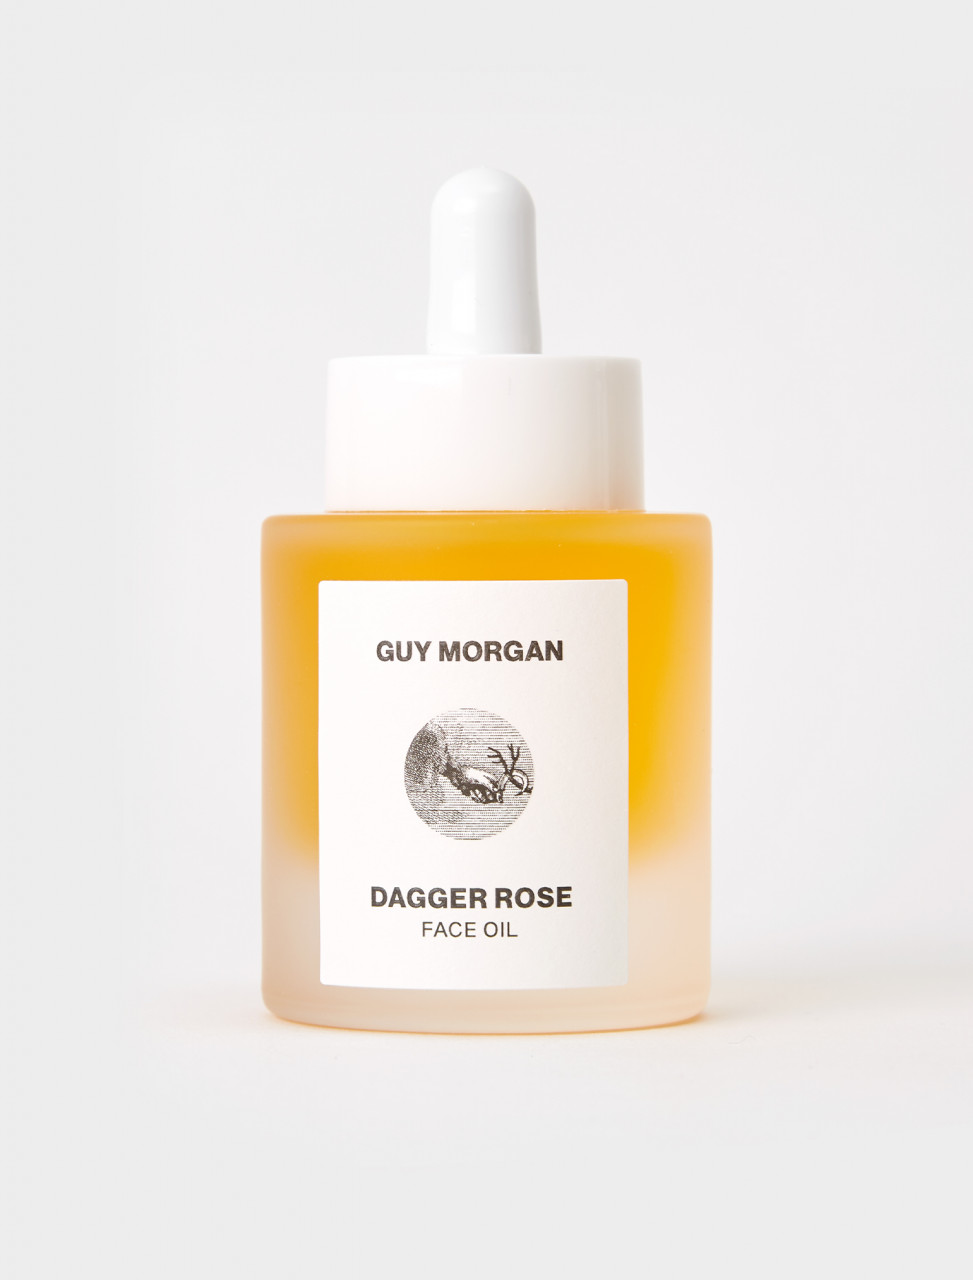 DRFO GUY MORGAN DAGGER ROSE FACE OIL 30ML